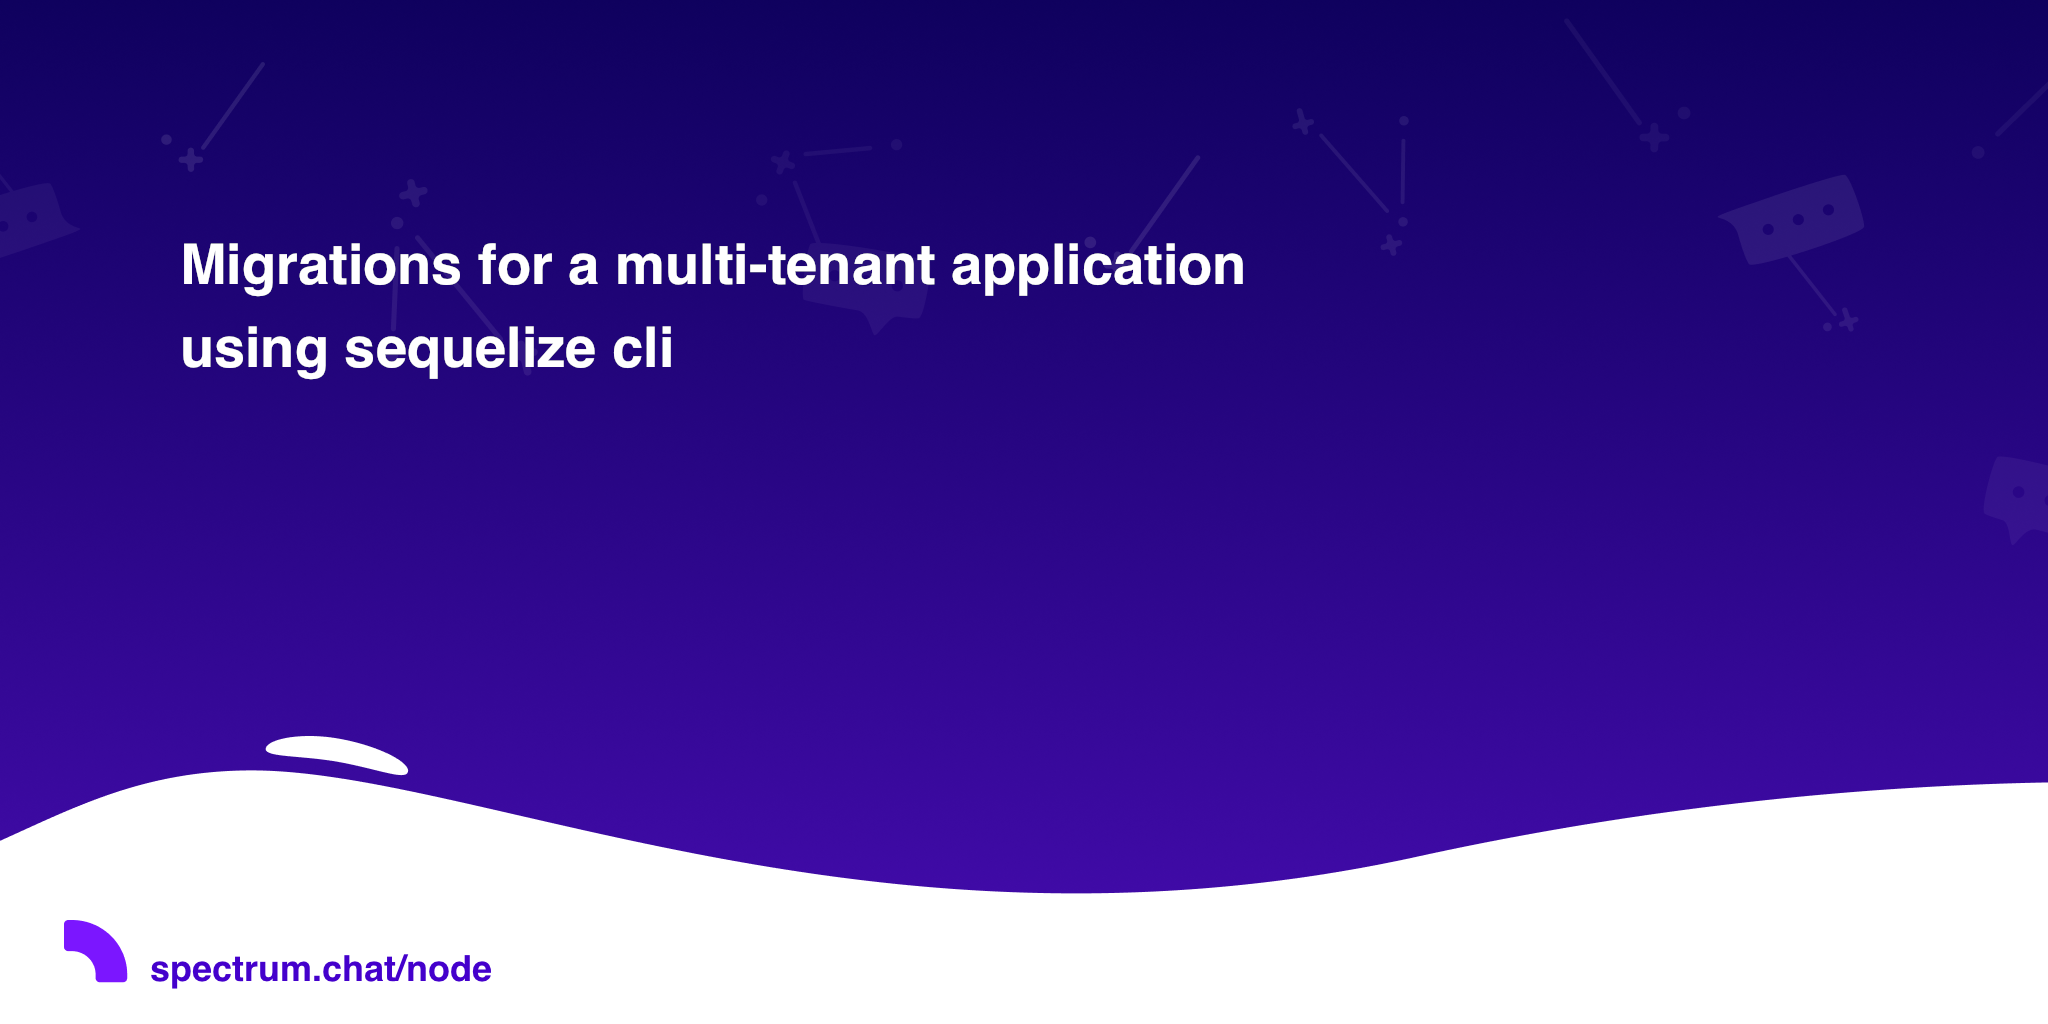 Migrations for a multi-tenant application using sequelize